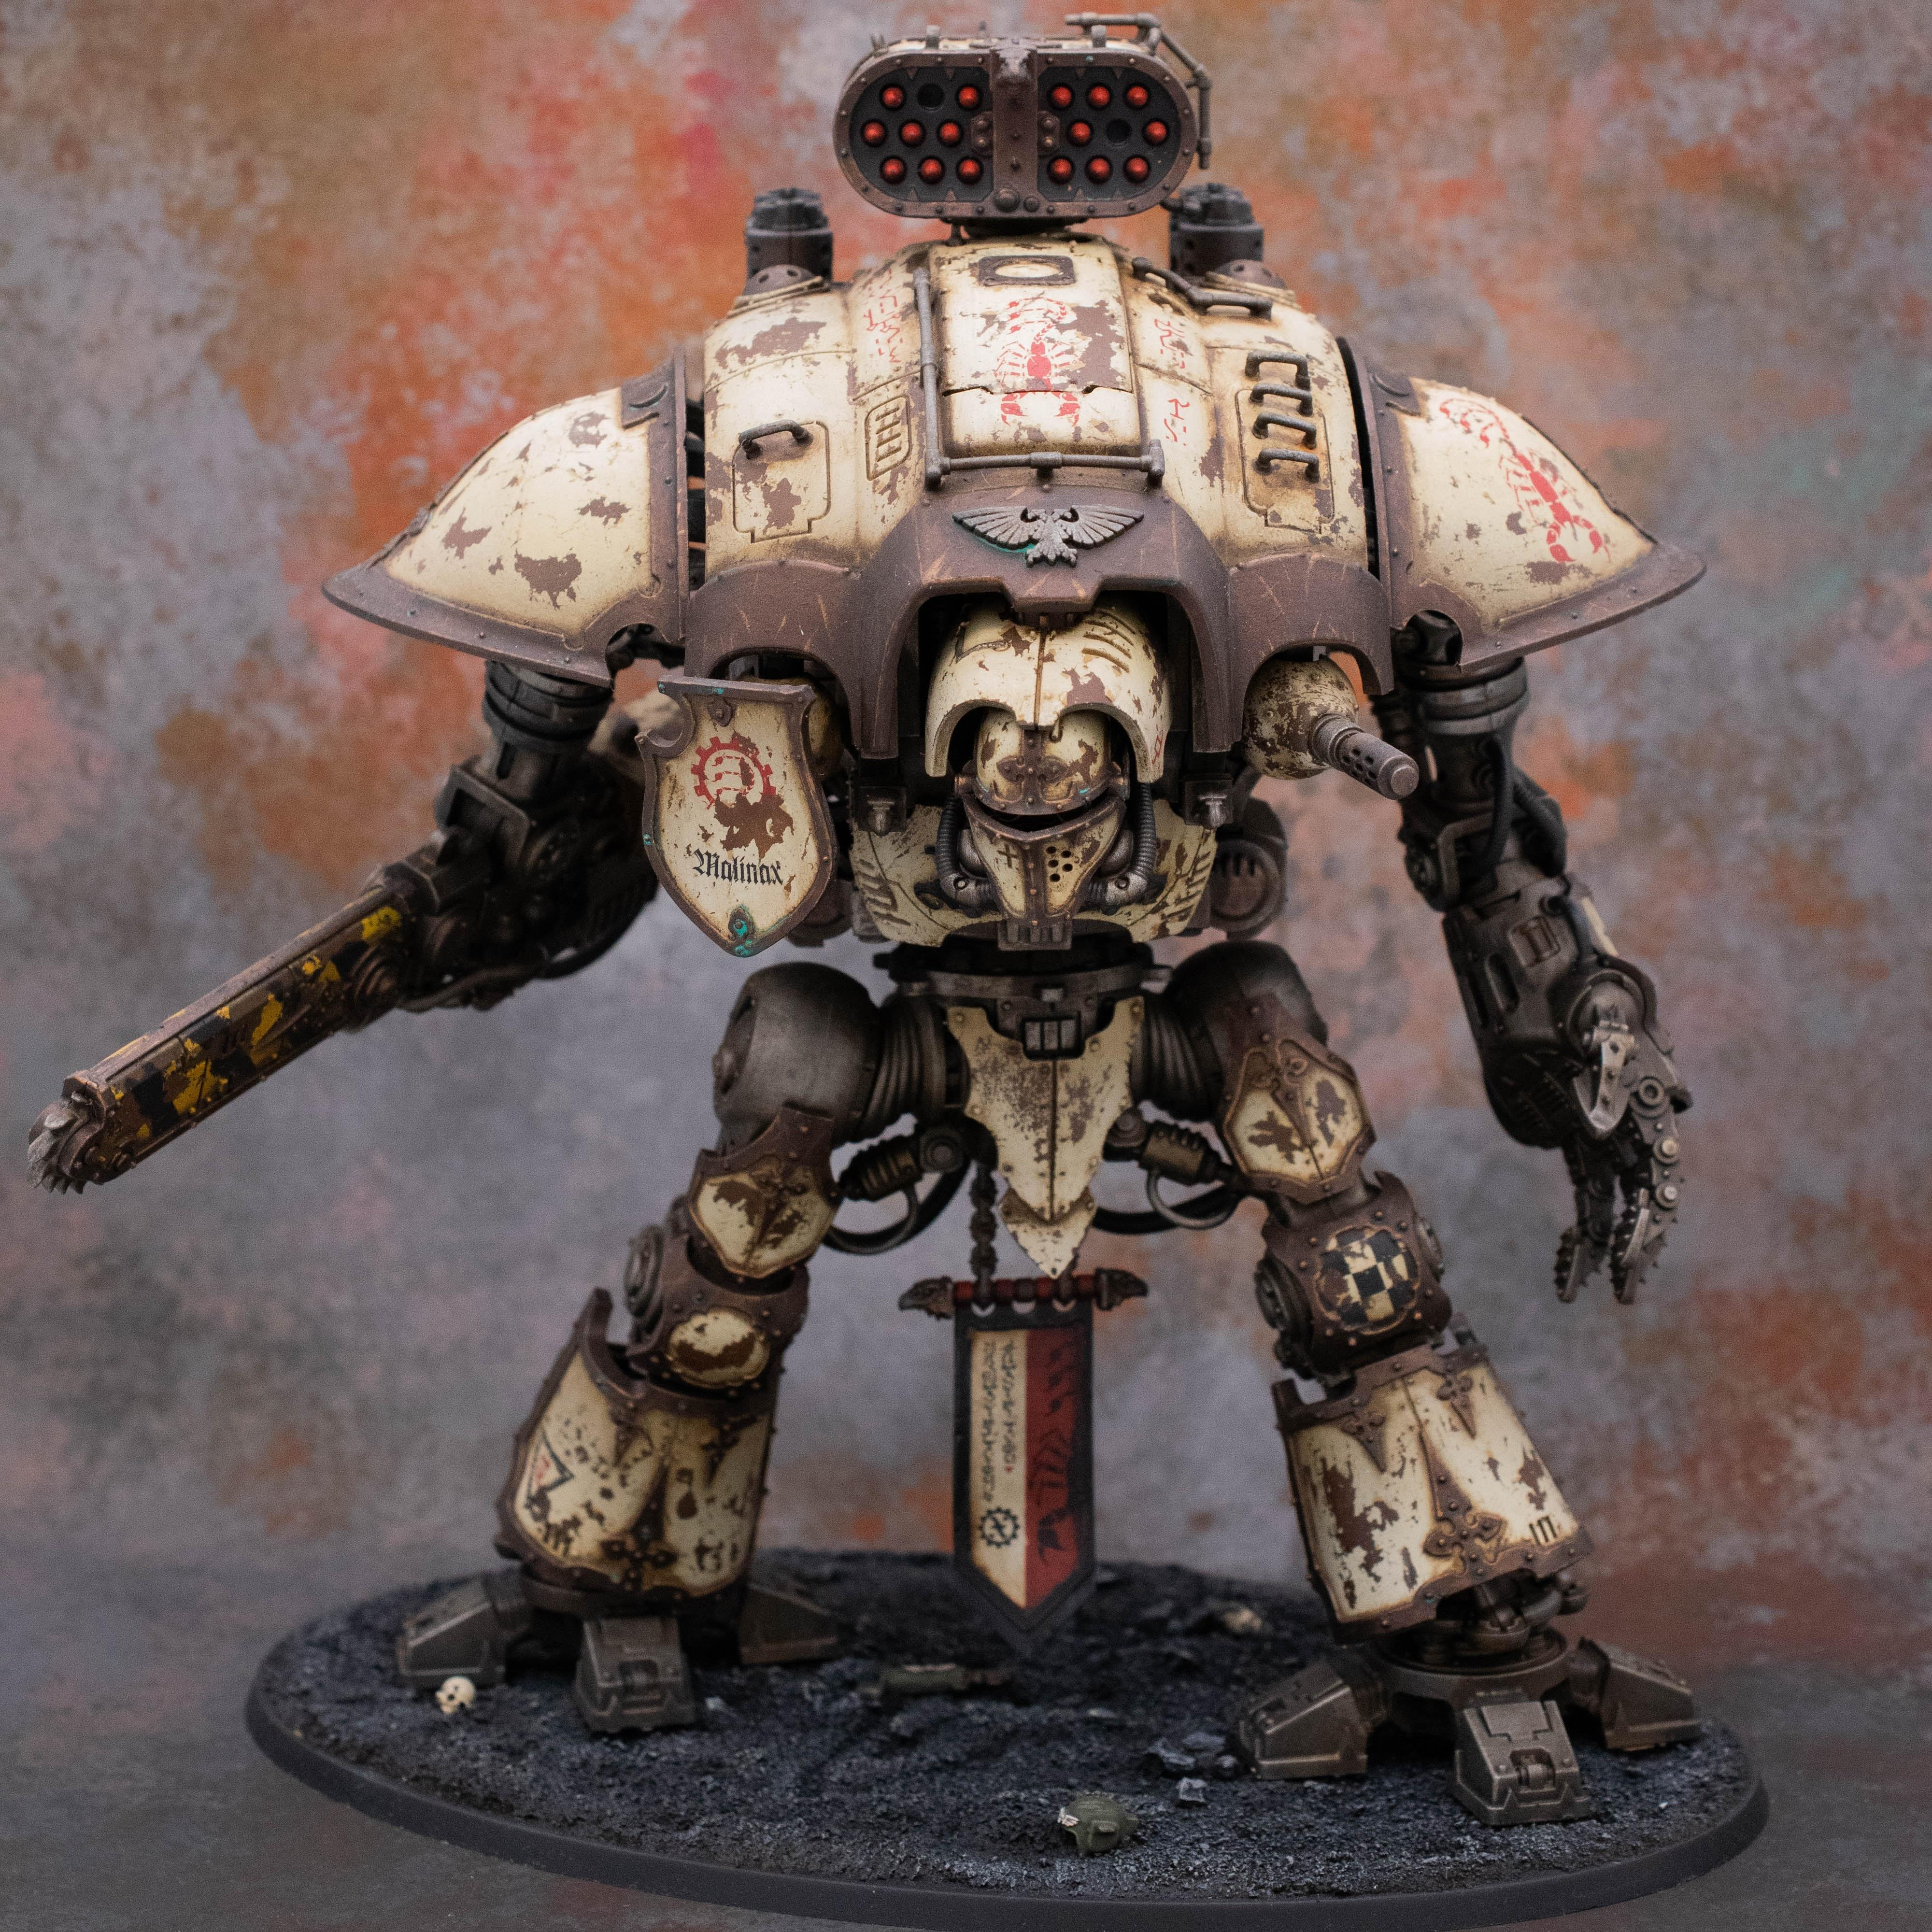 Imperial Knight, Malinax, Traitor, Weathered